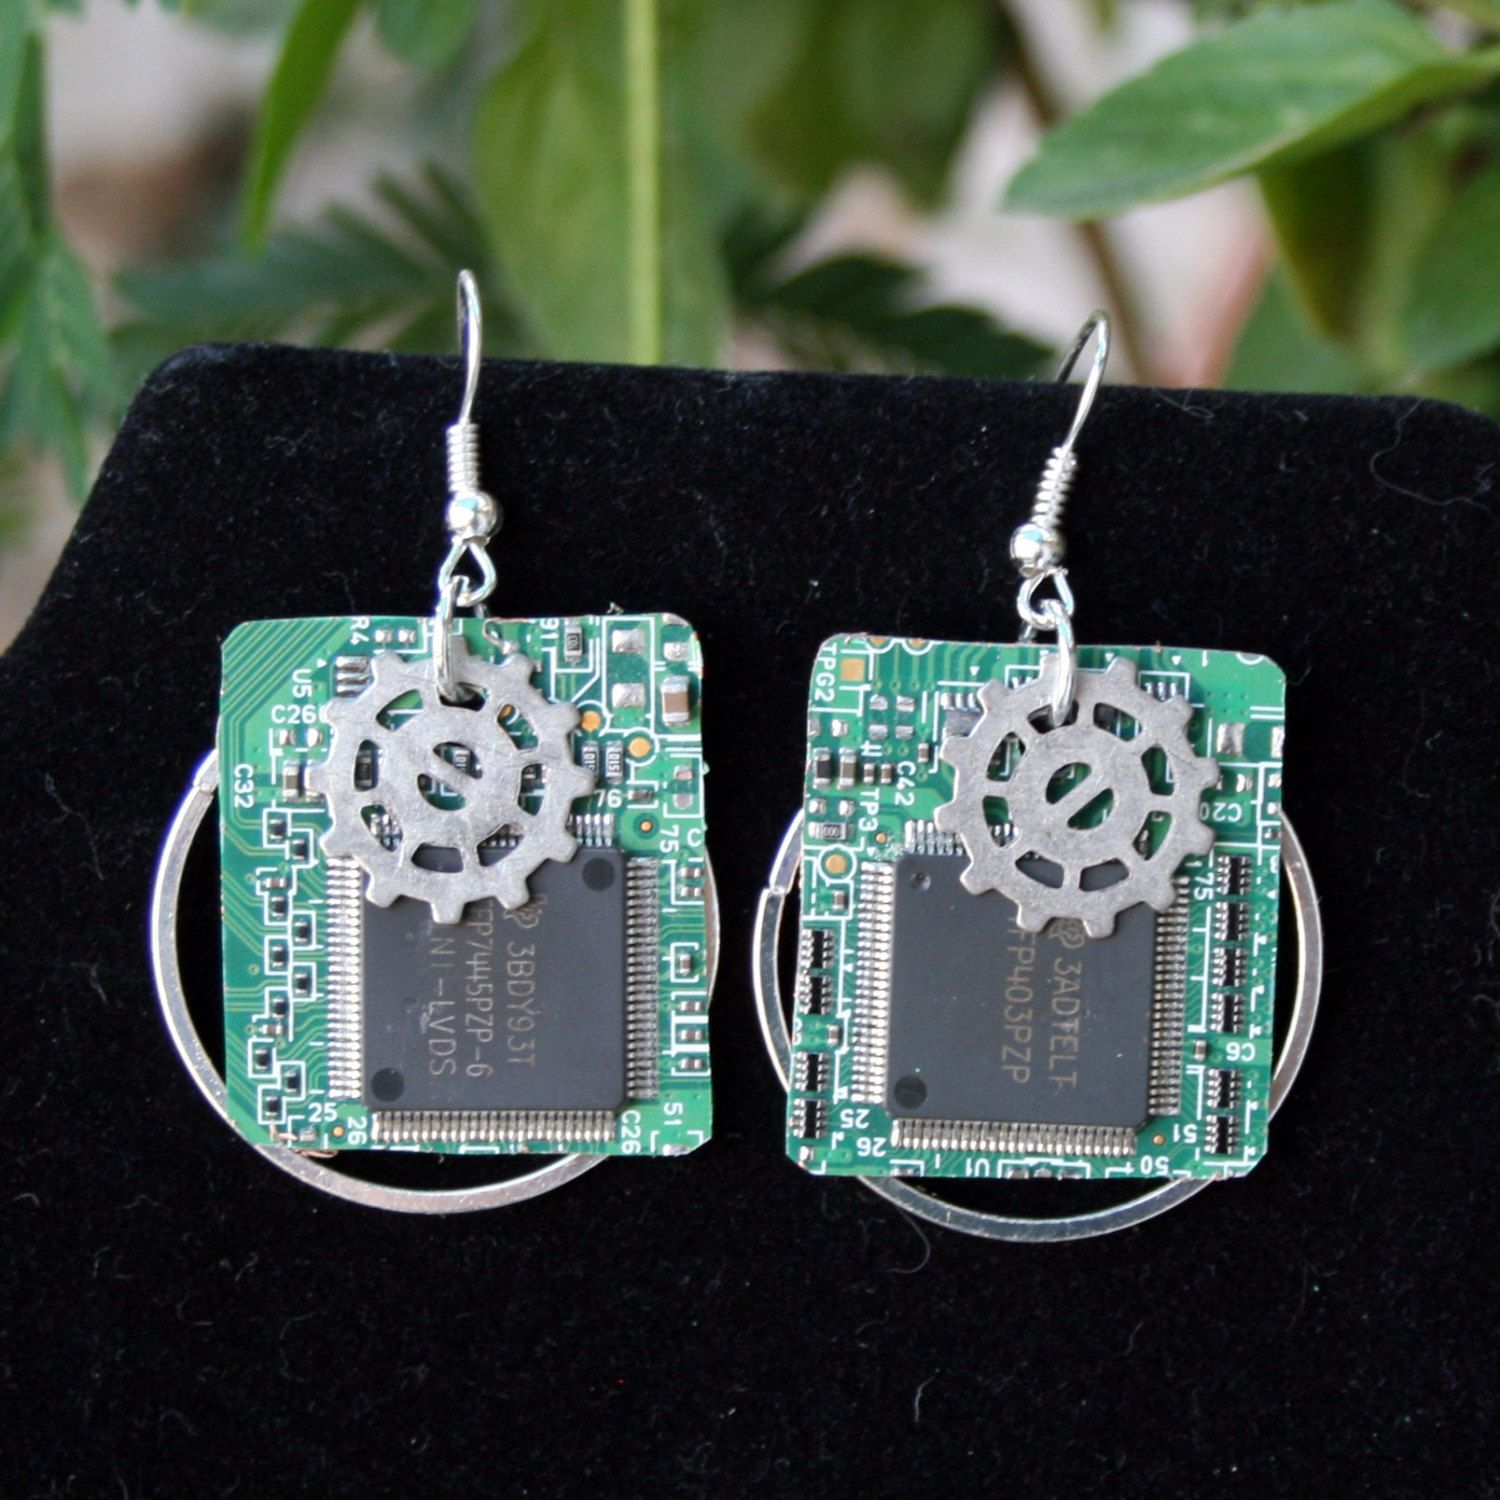 The Engineers Turned Artists At Techcycled Make Jewelry Recycled Circuit Board Earrings Steampunk Vintage Wire Wrapped Geek Chic Made From Up Cycled Computer Parts Very Light And